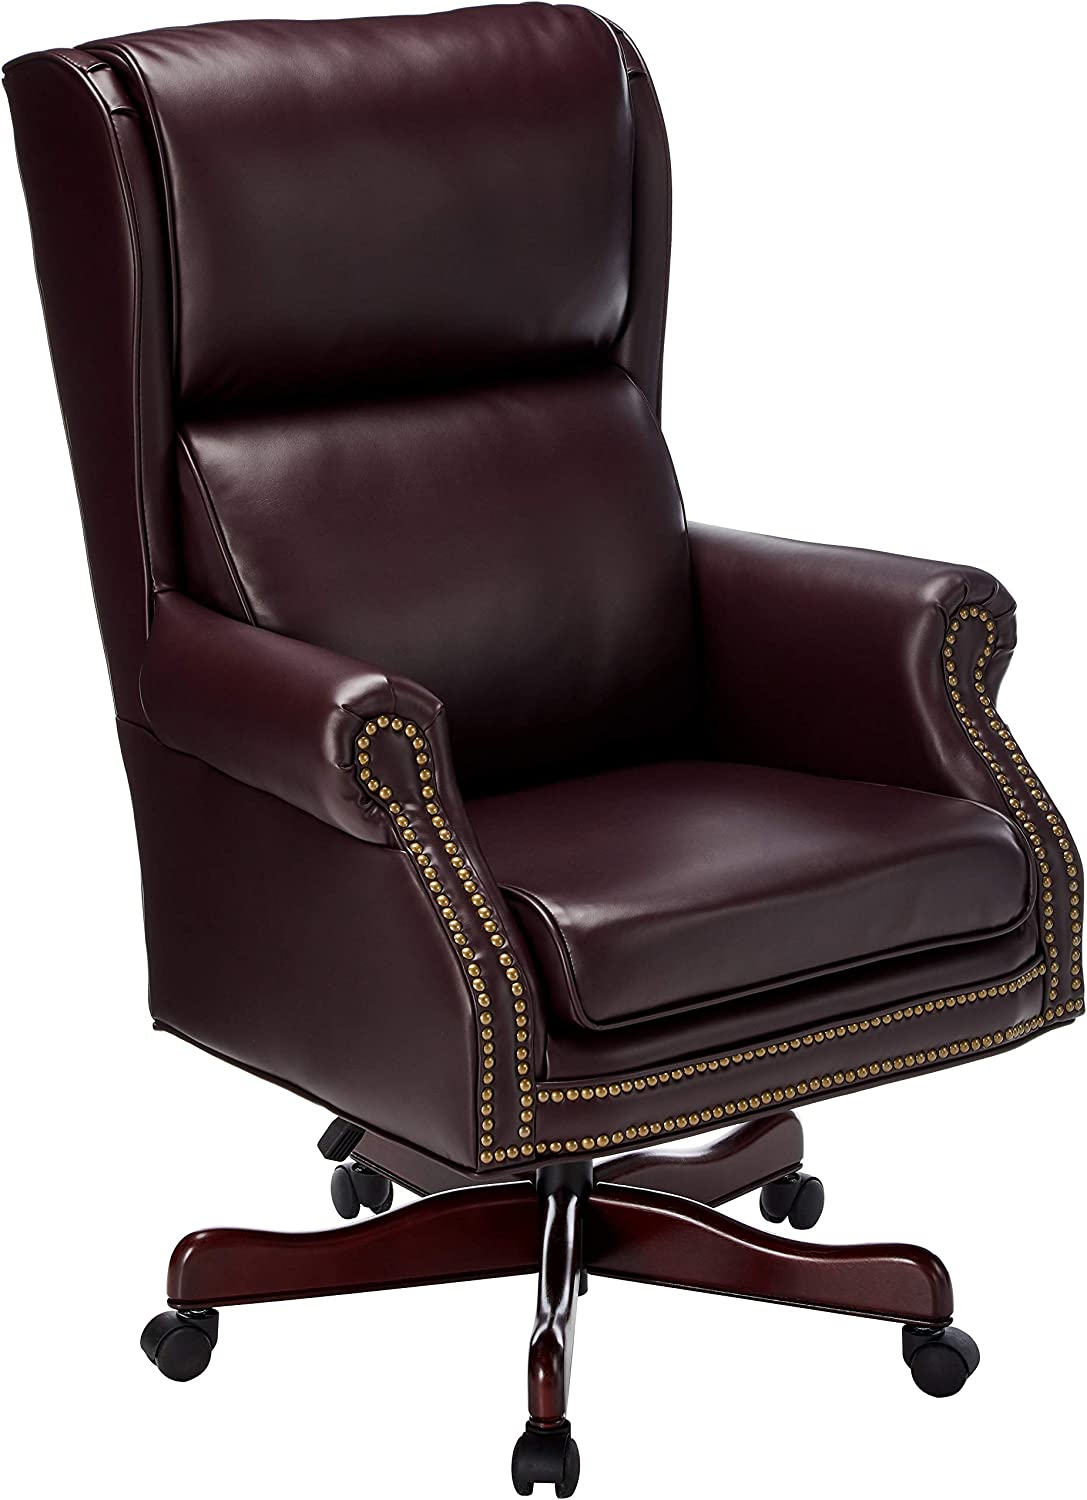 Lorell Swivel Executive Chair, 29 by 32 by 45-Inch-47-Inch, Burgundy